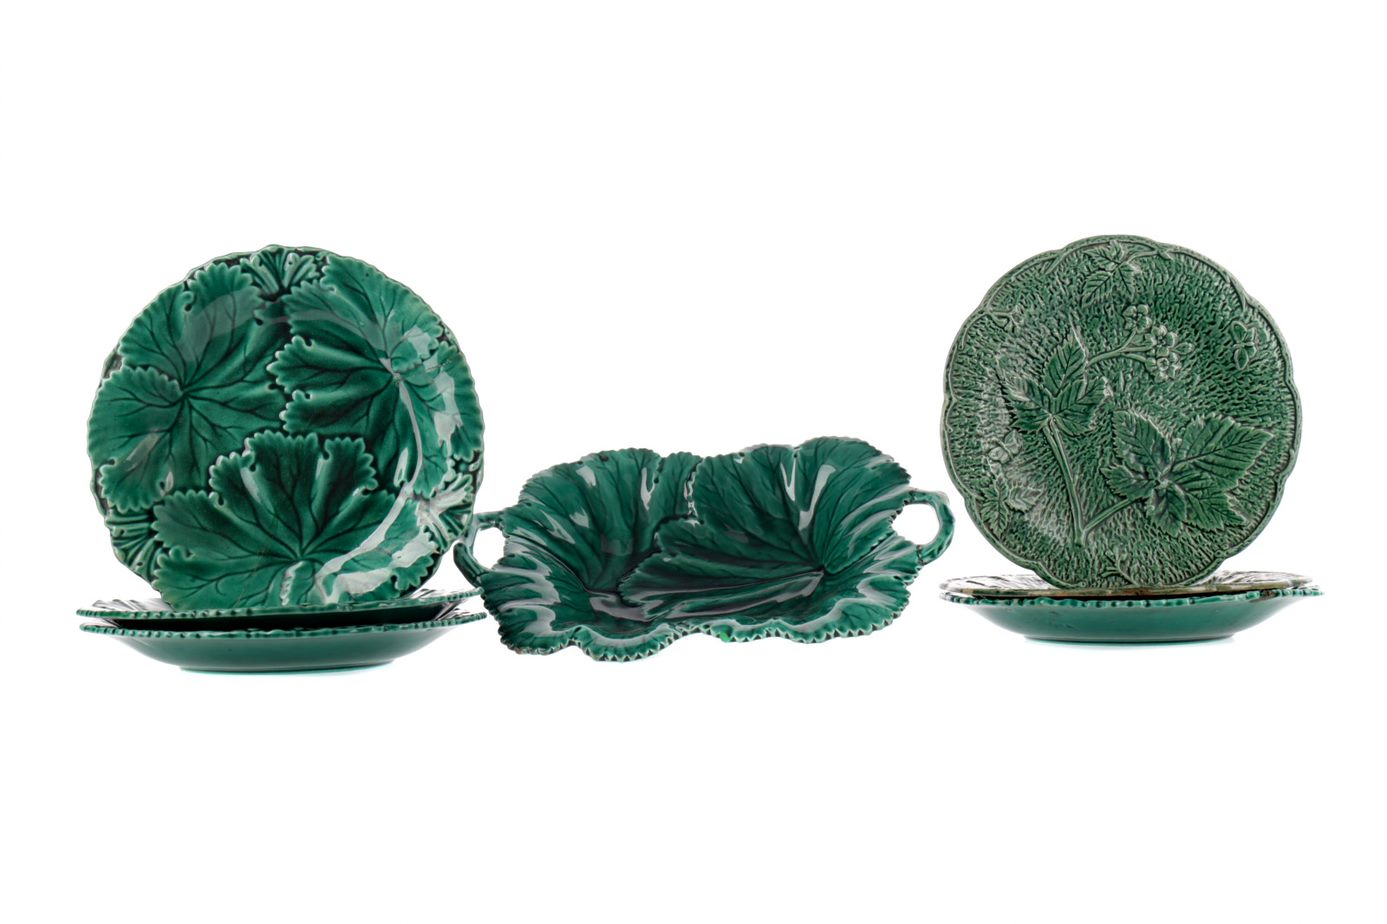 A COMPOSITE SET OF MID-19TH CENTURY LEAF MOULDED PLATES, ALONG WITH A SERVING DISH